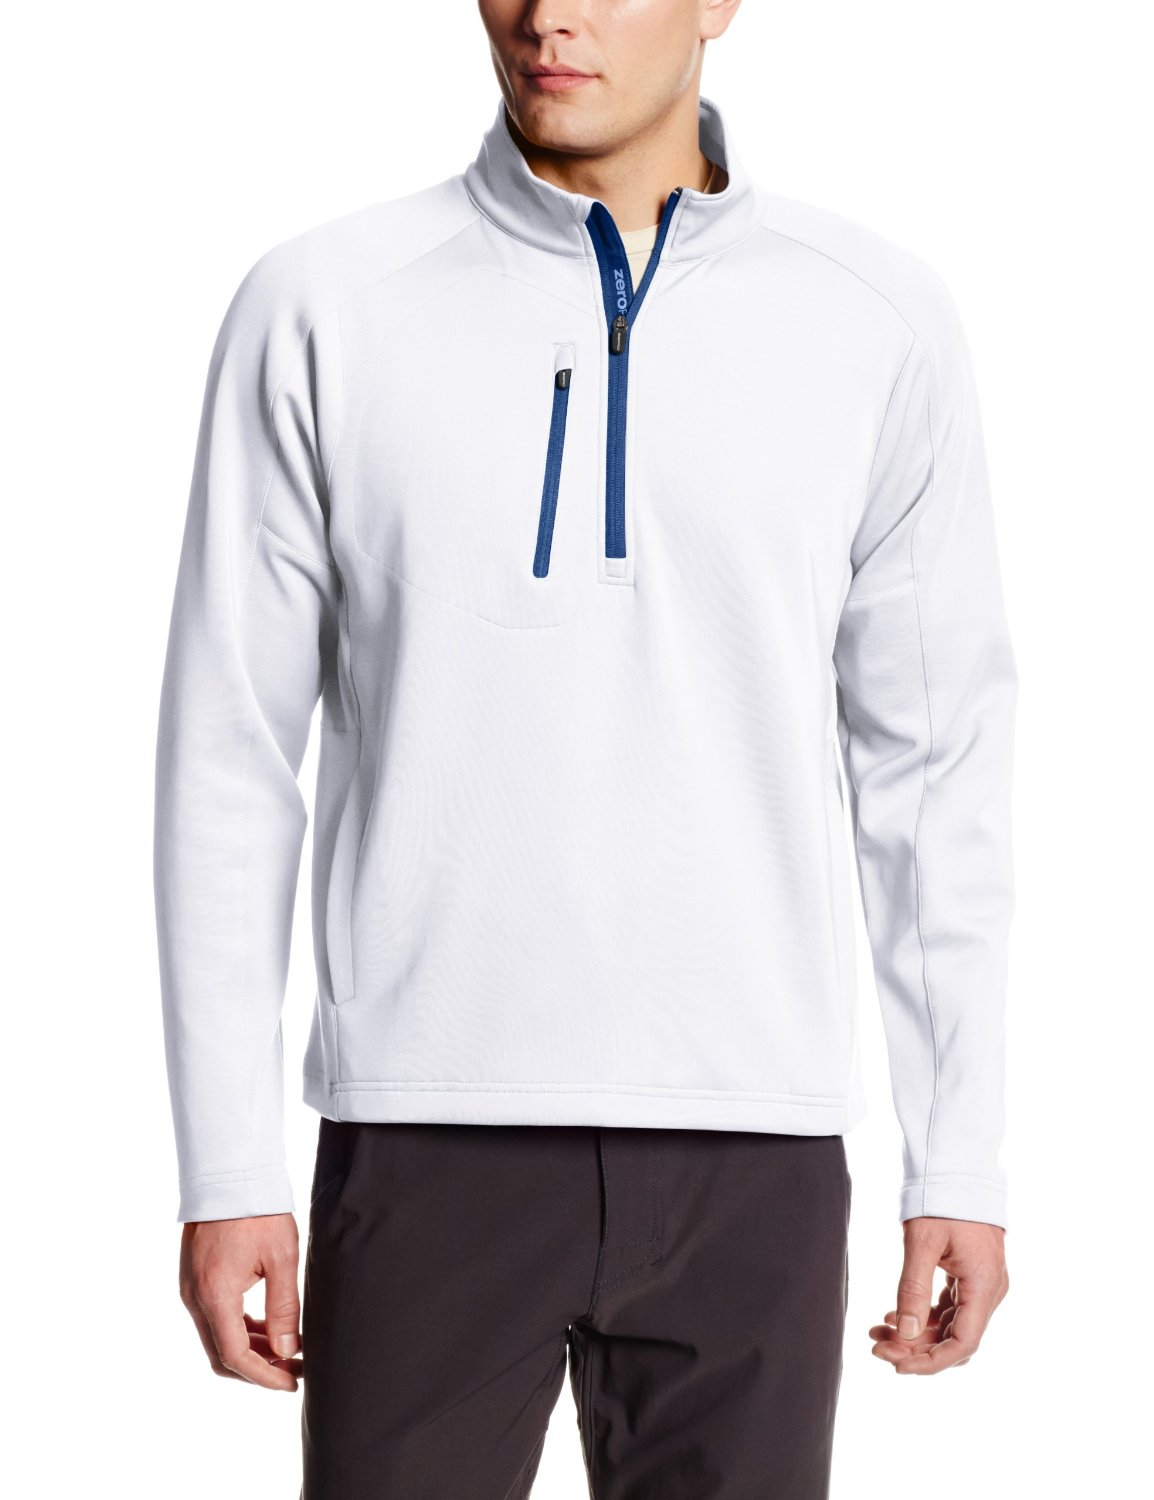 Mens Zero Restriction Z500 Quarter Zip Golf Jackets